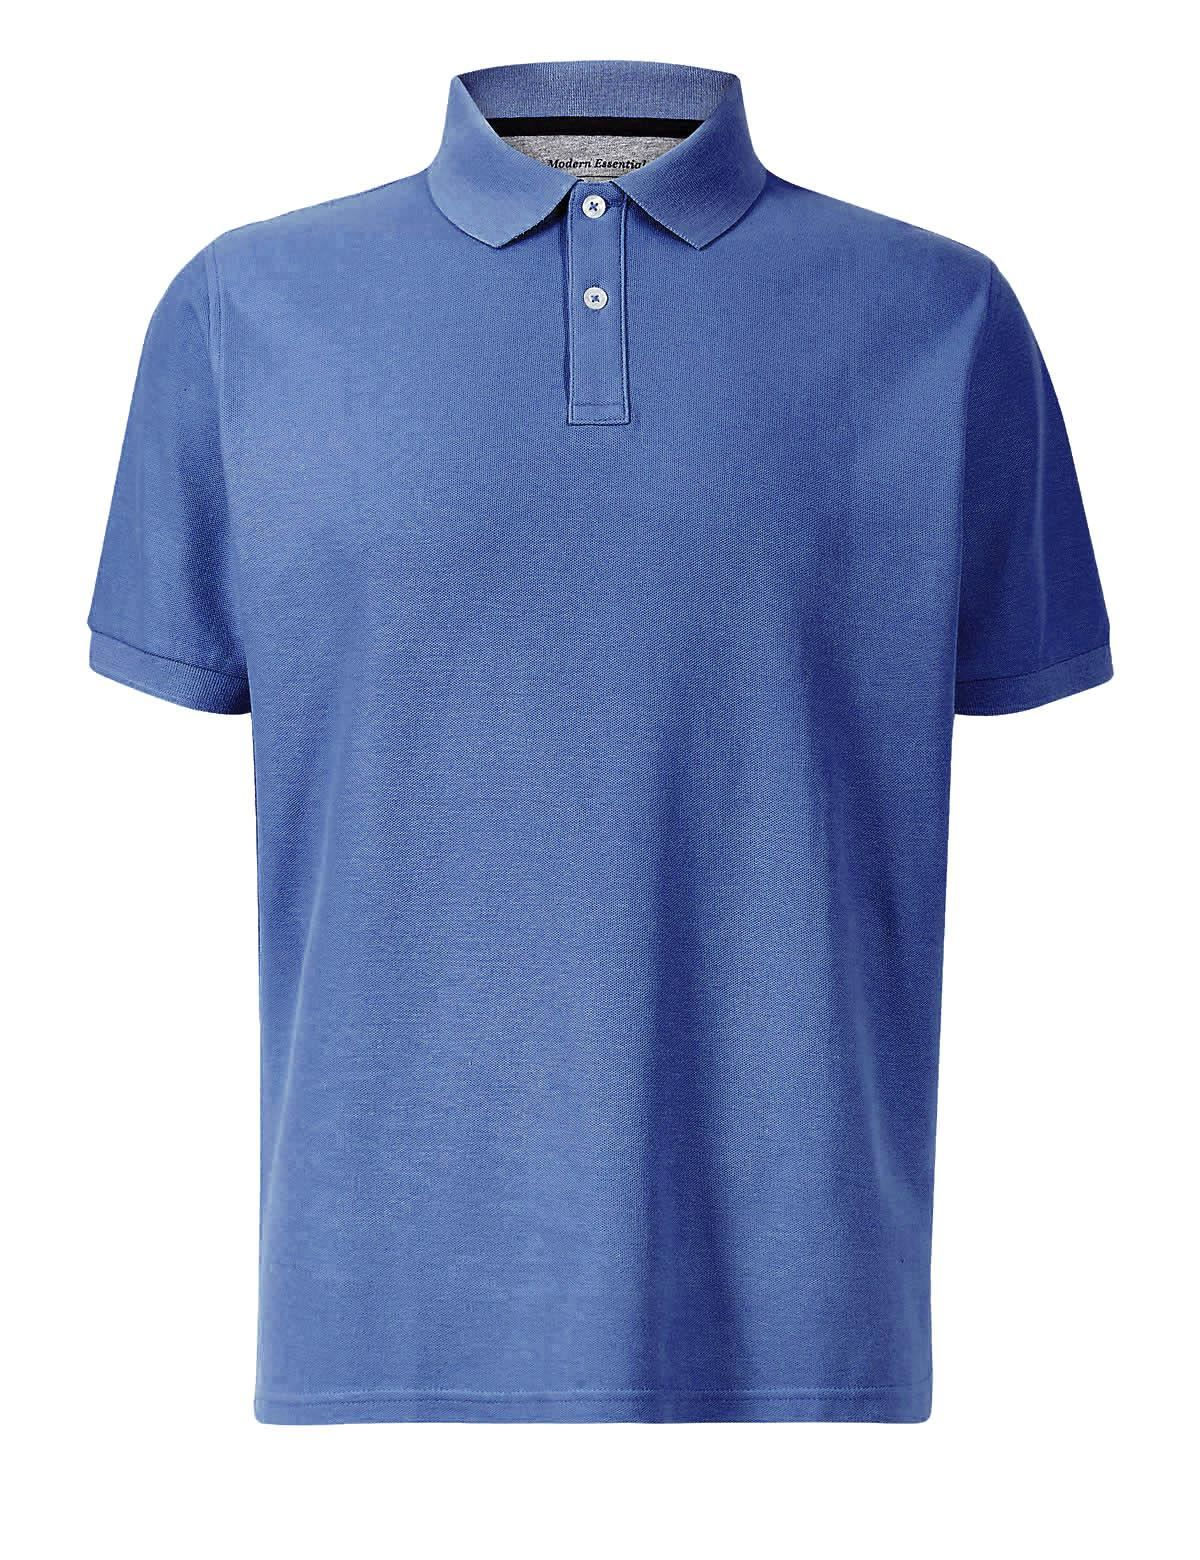 MARKS-amp-SPENCER-Mens-Classic-Cotton-Polo-Shirt-M-amp-S-All-Colours-and-Large-Sizes thumbnail 9